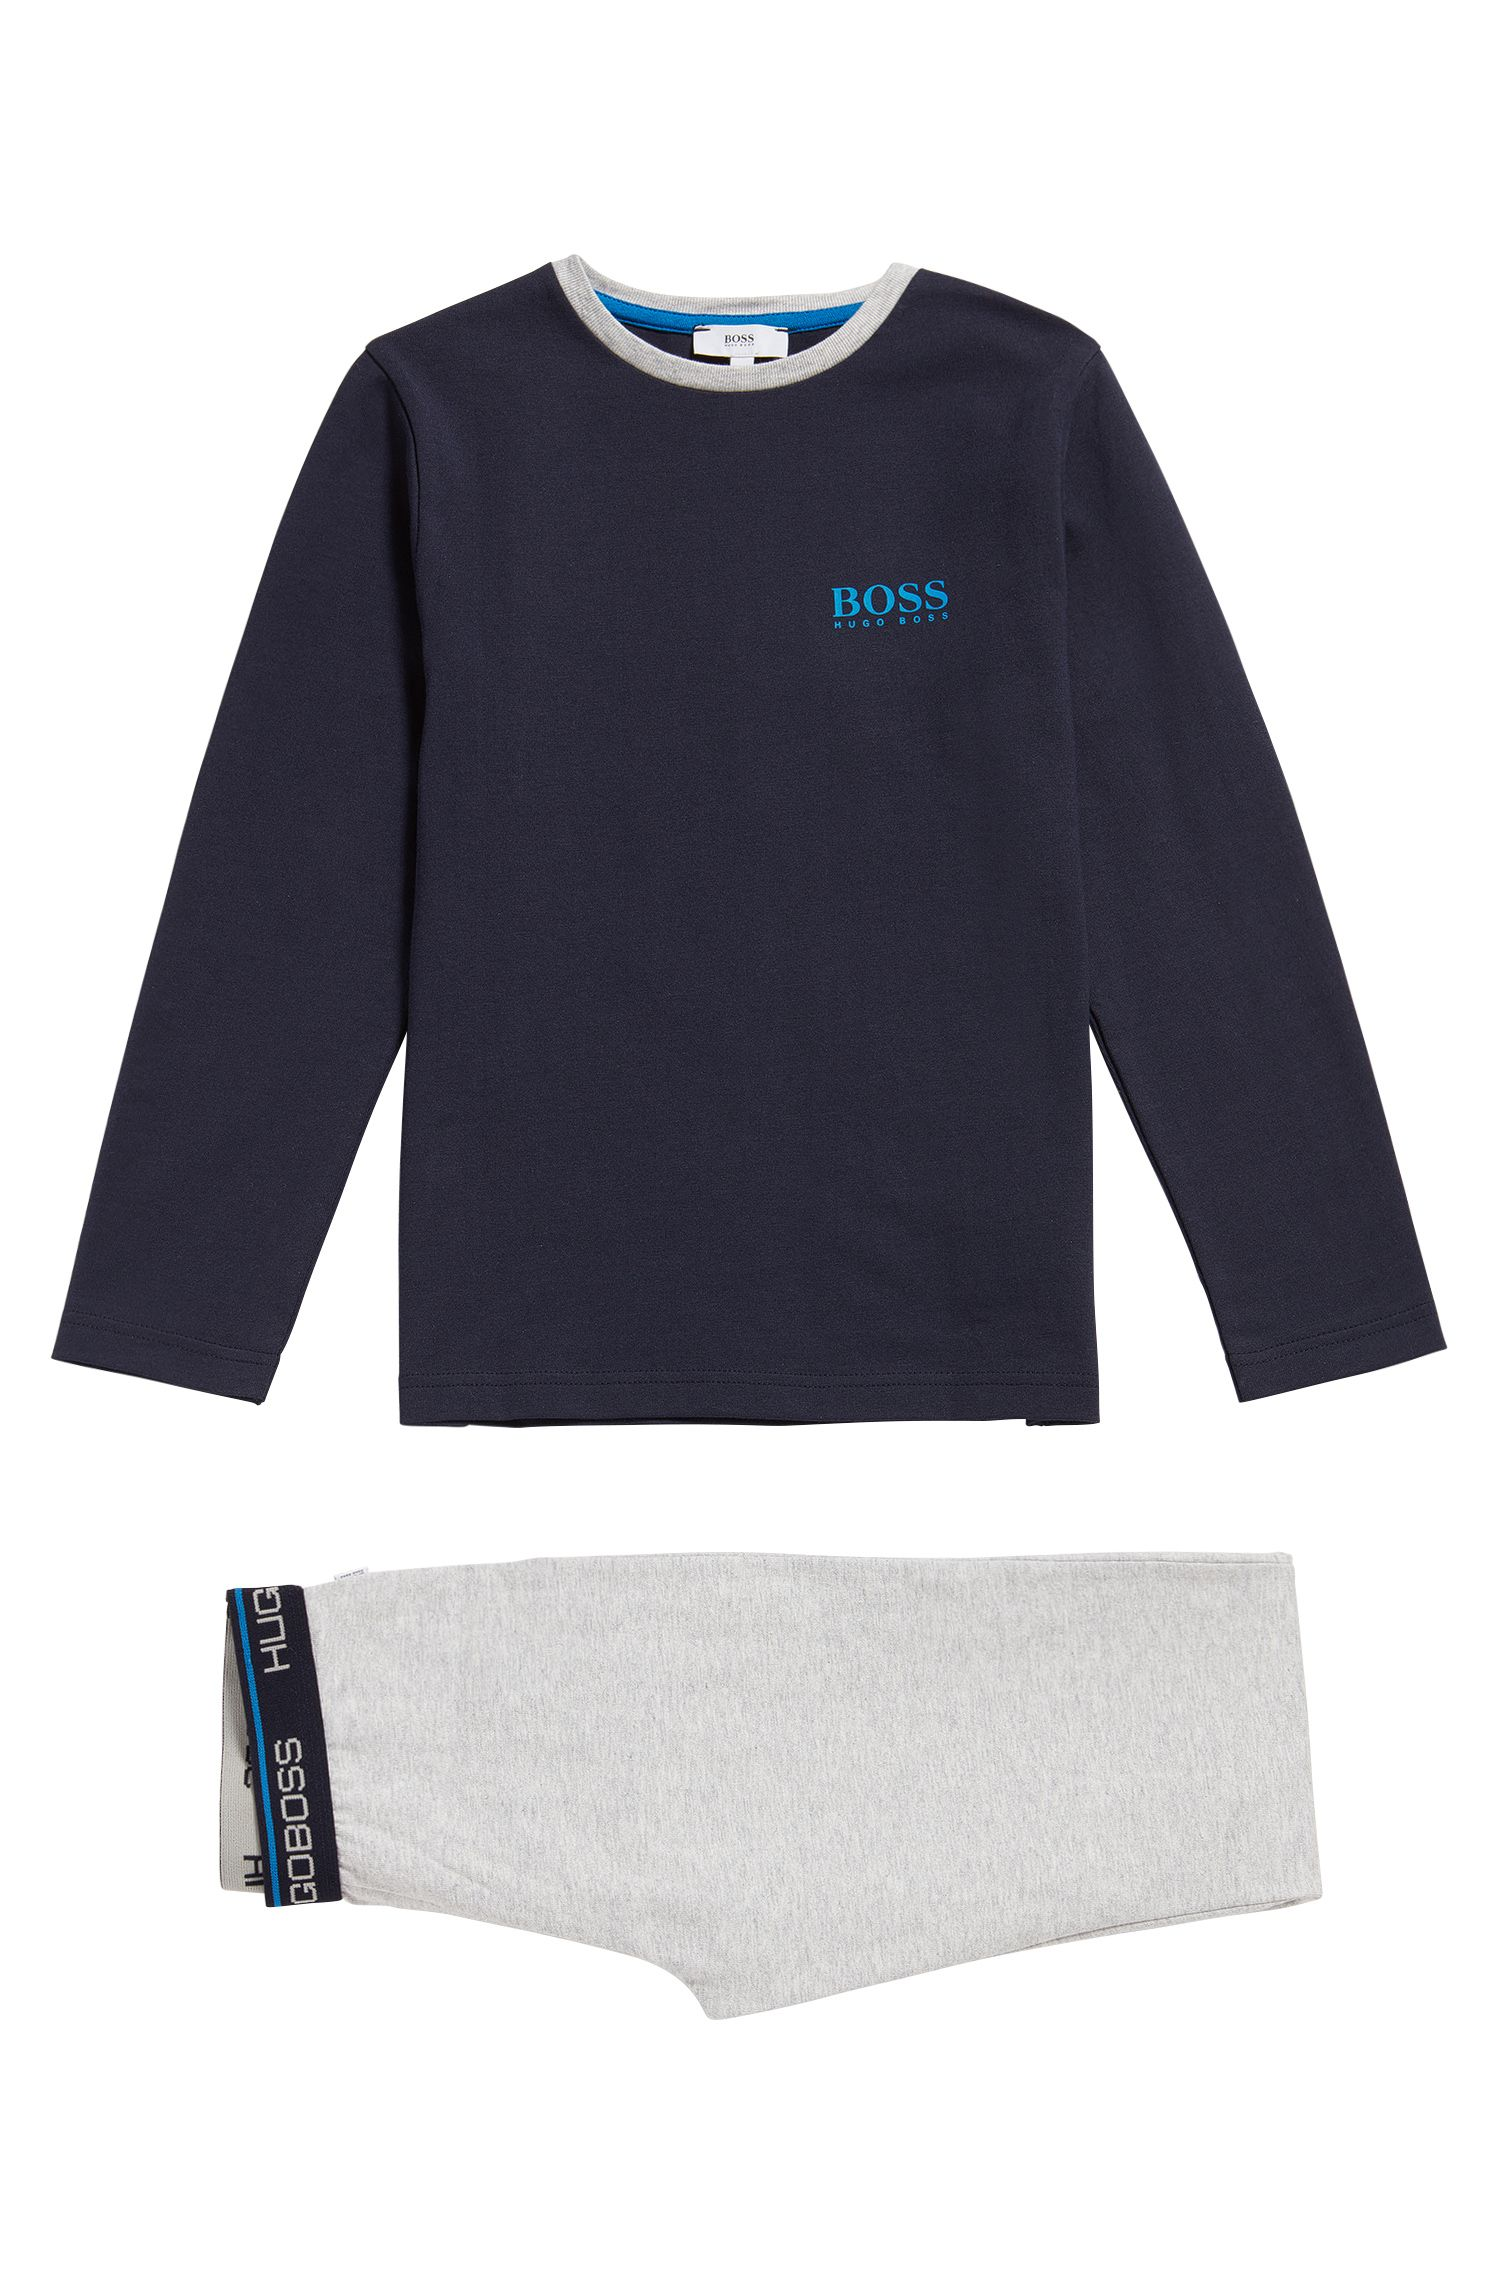 Kids' cotton pyjamas with logo print: 'J28048'